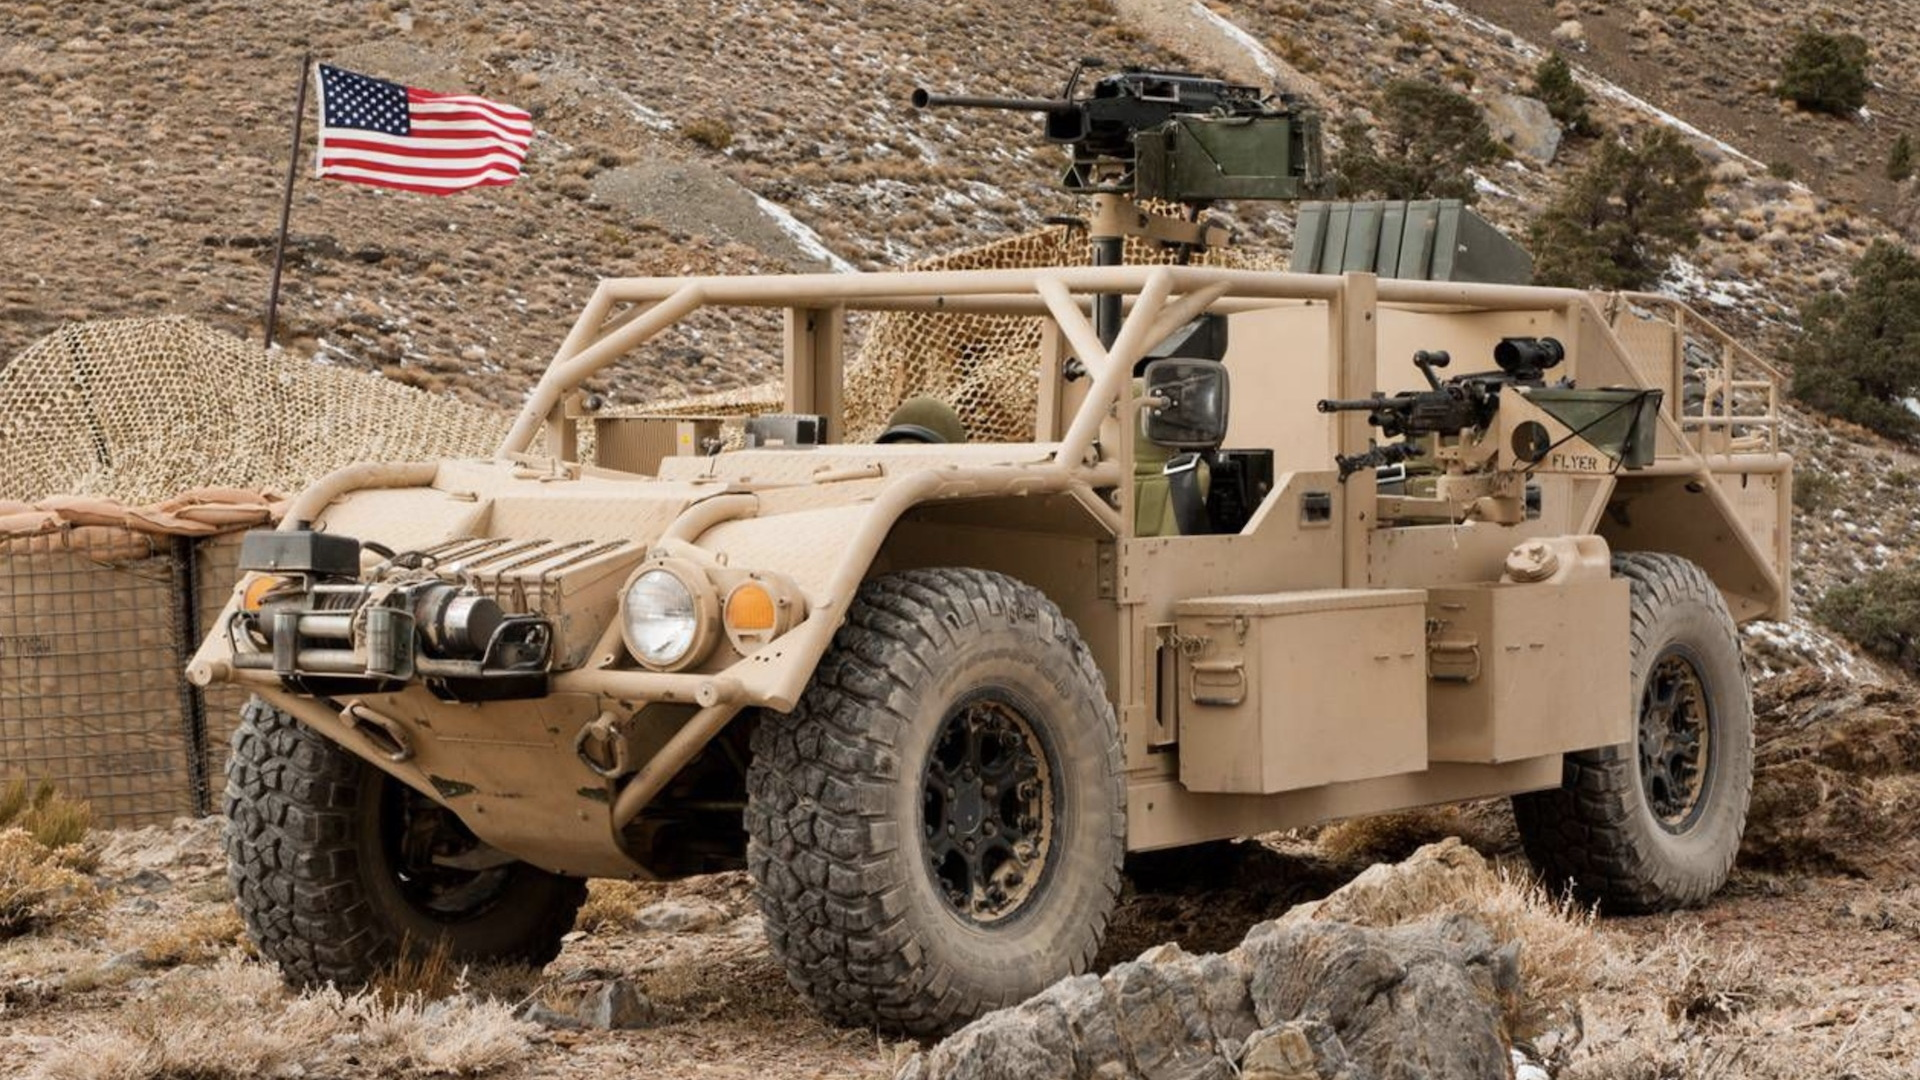 US Army's Ground Mobility Vehicle